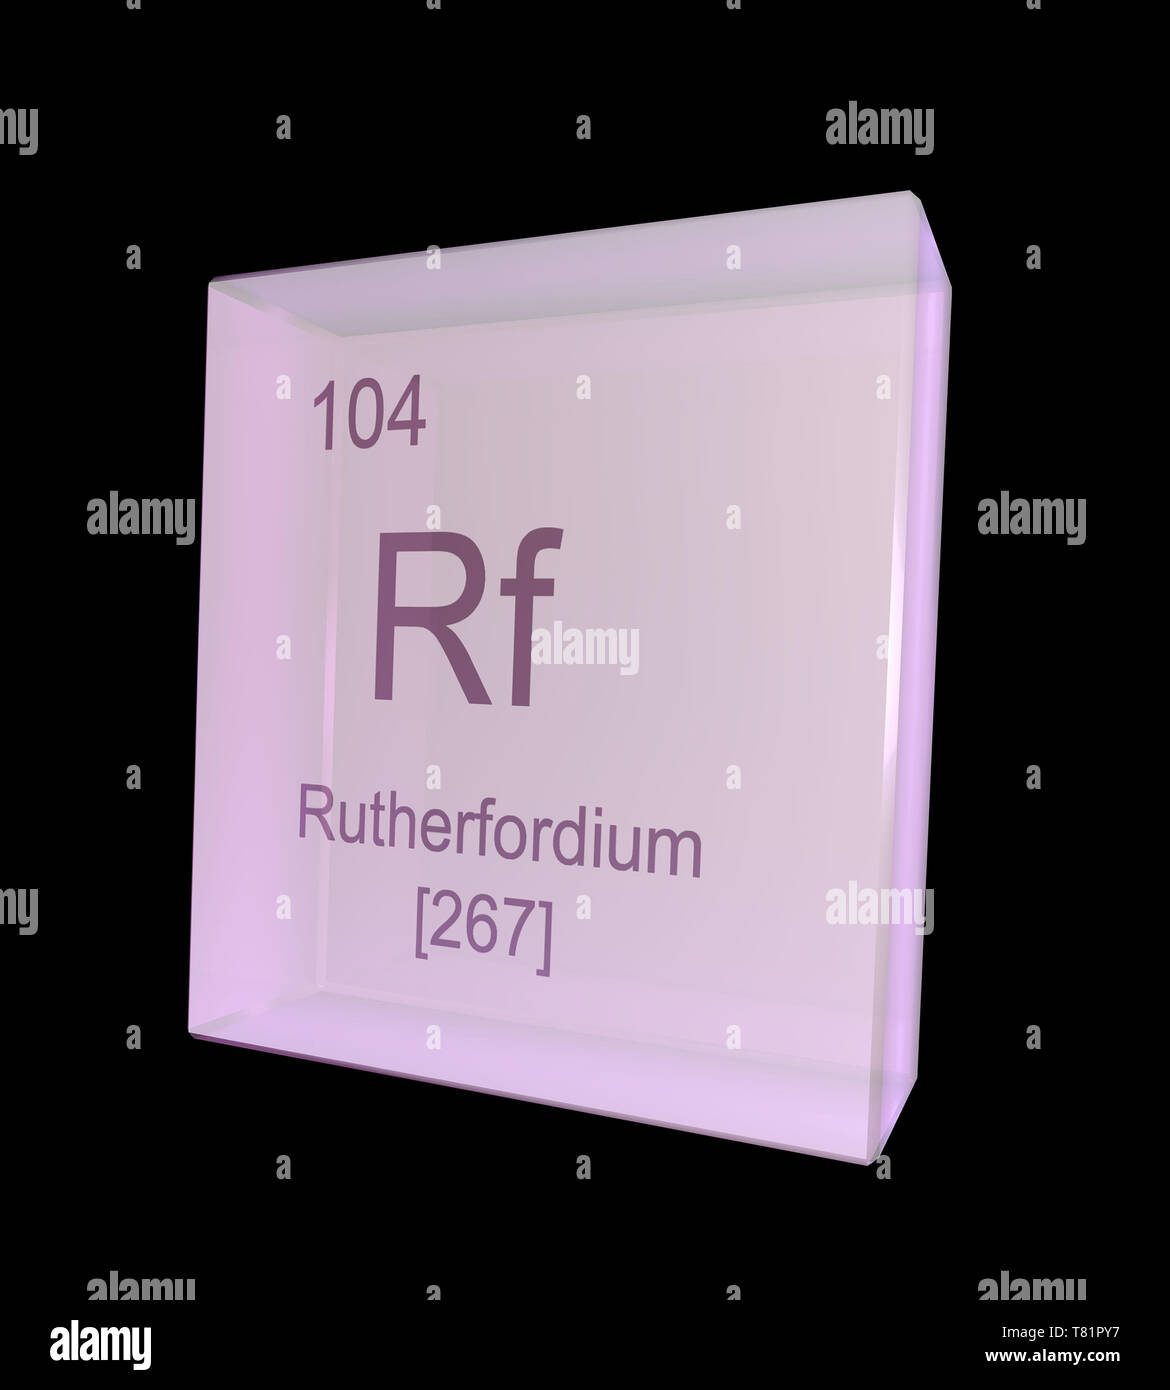 Rutherfordium, Chemical Element Symbol, Illustration Stock Photo